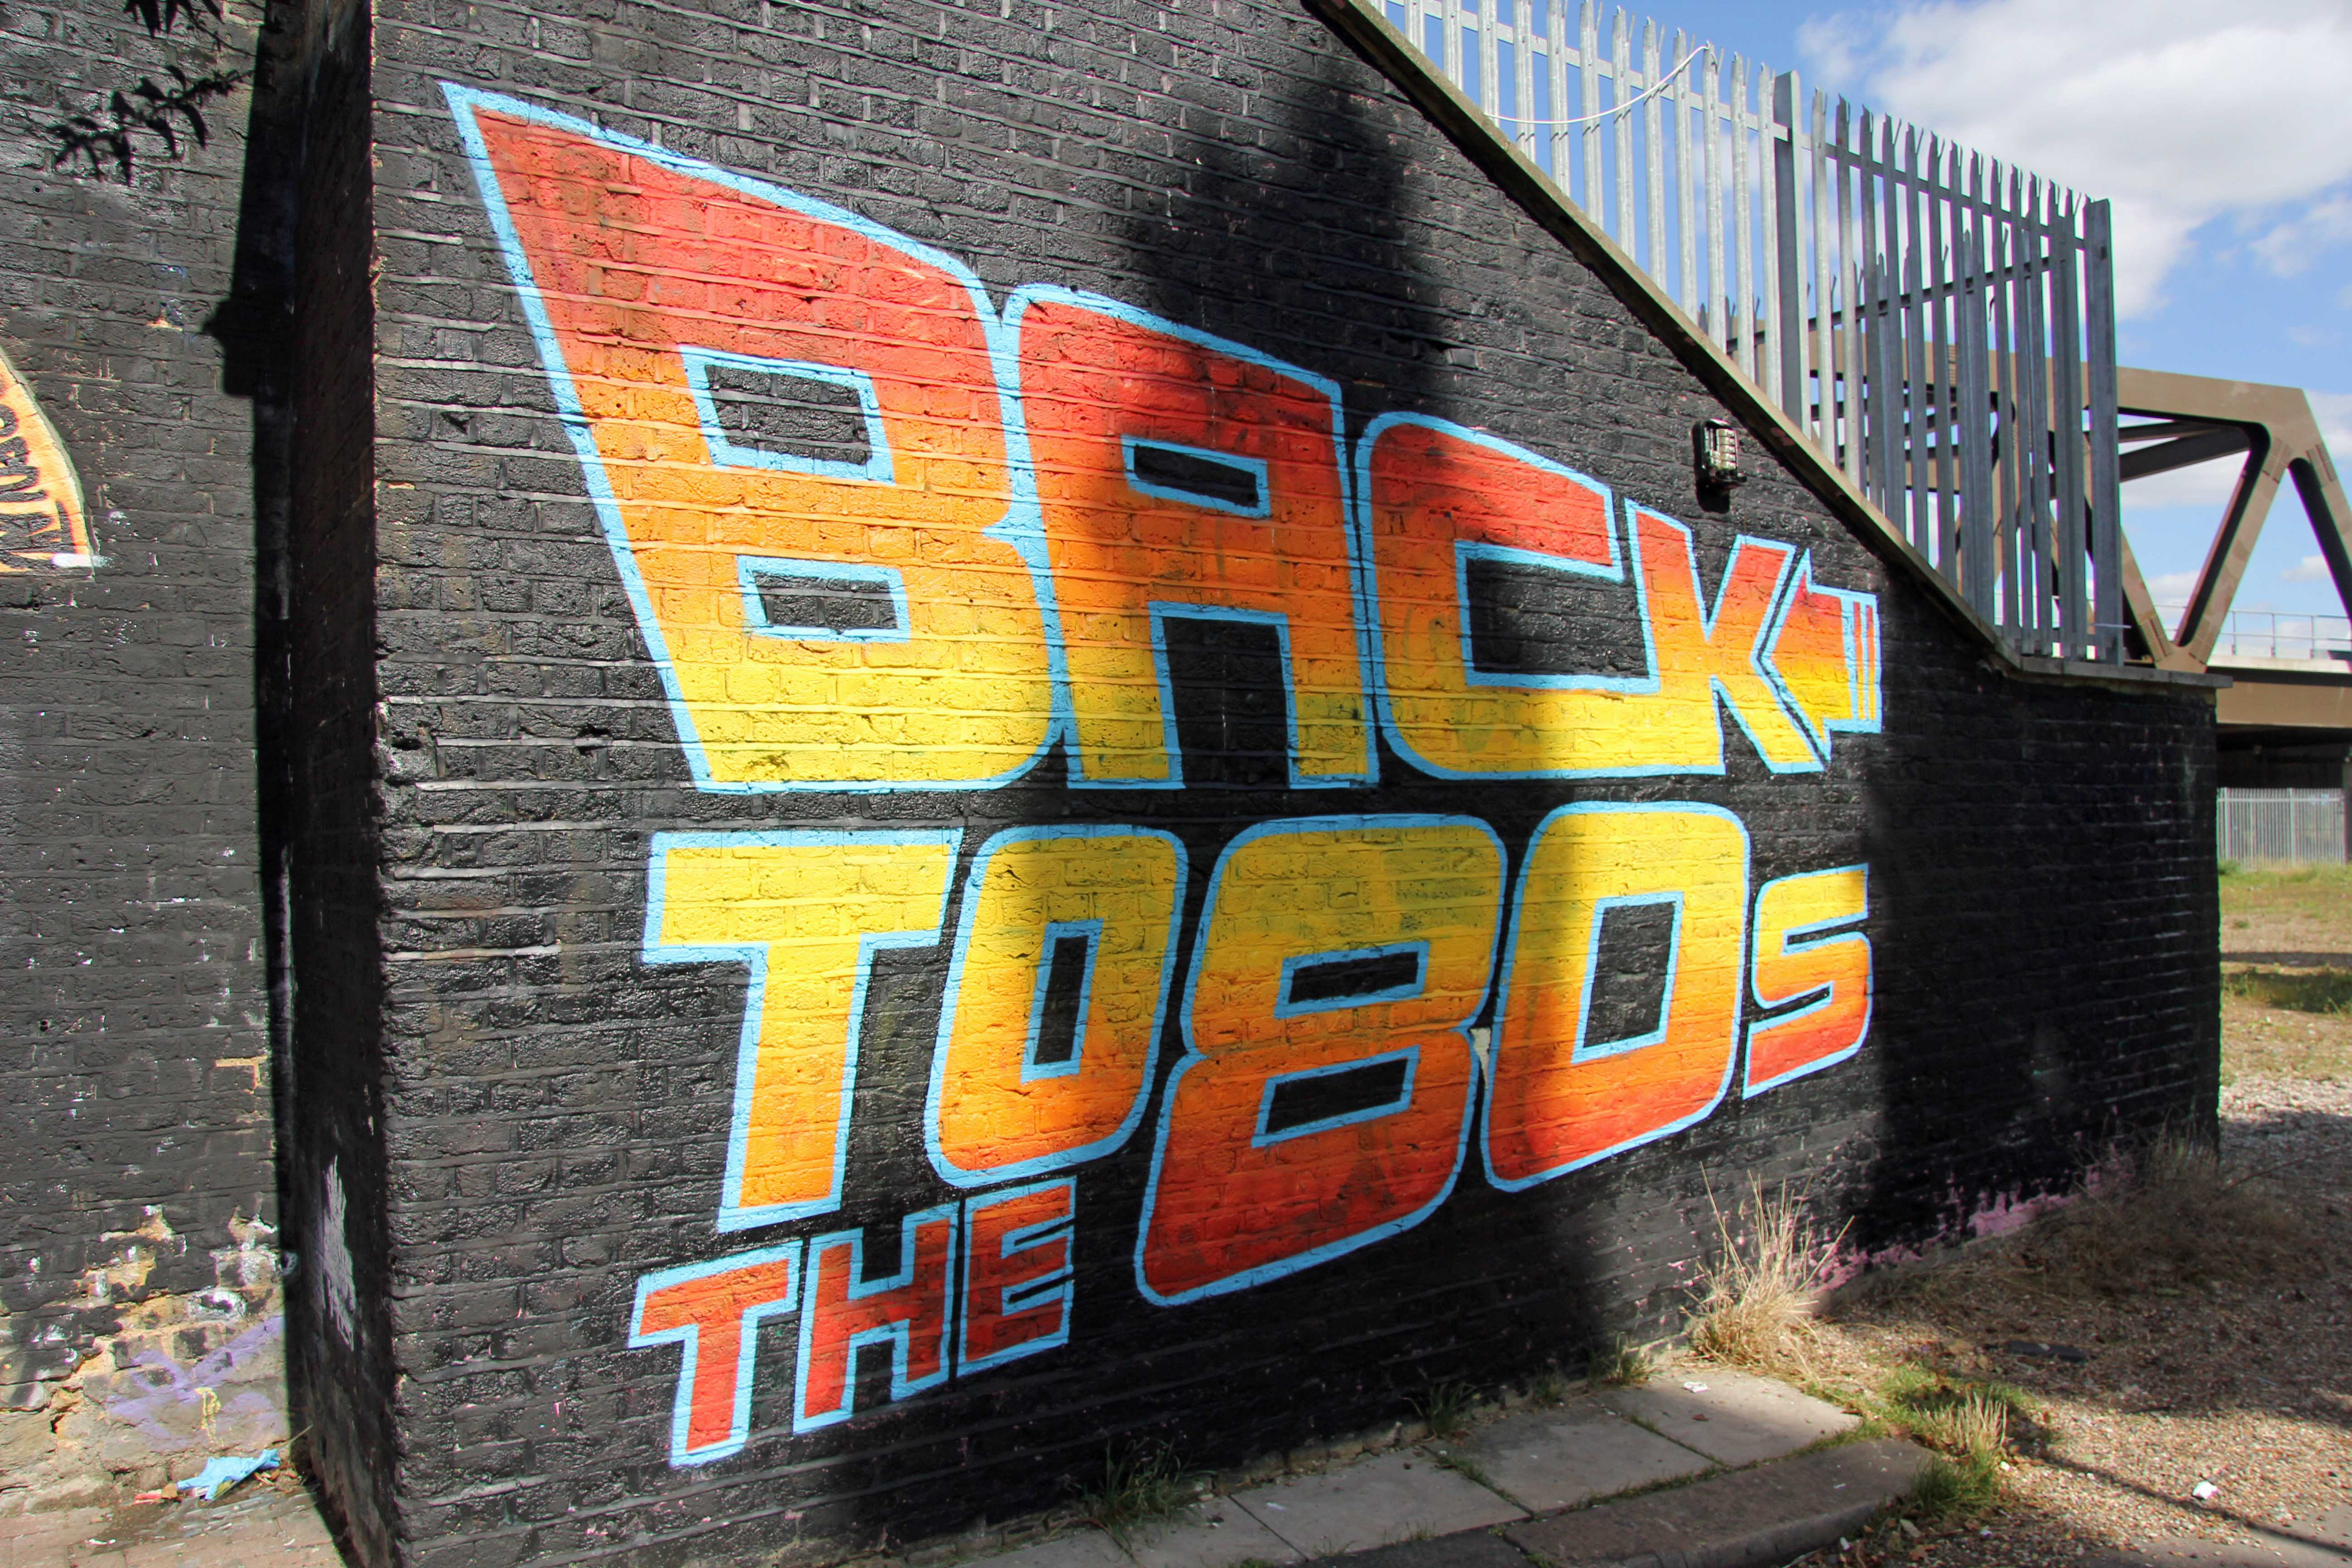 Back to the 80s - Street Art by Unknown Artist in East London